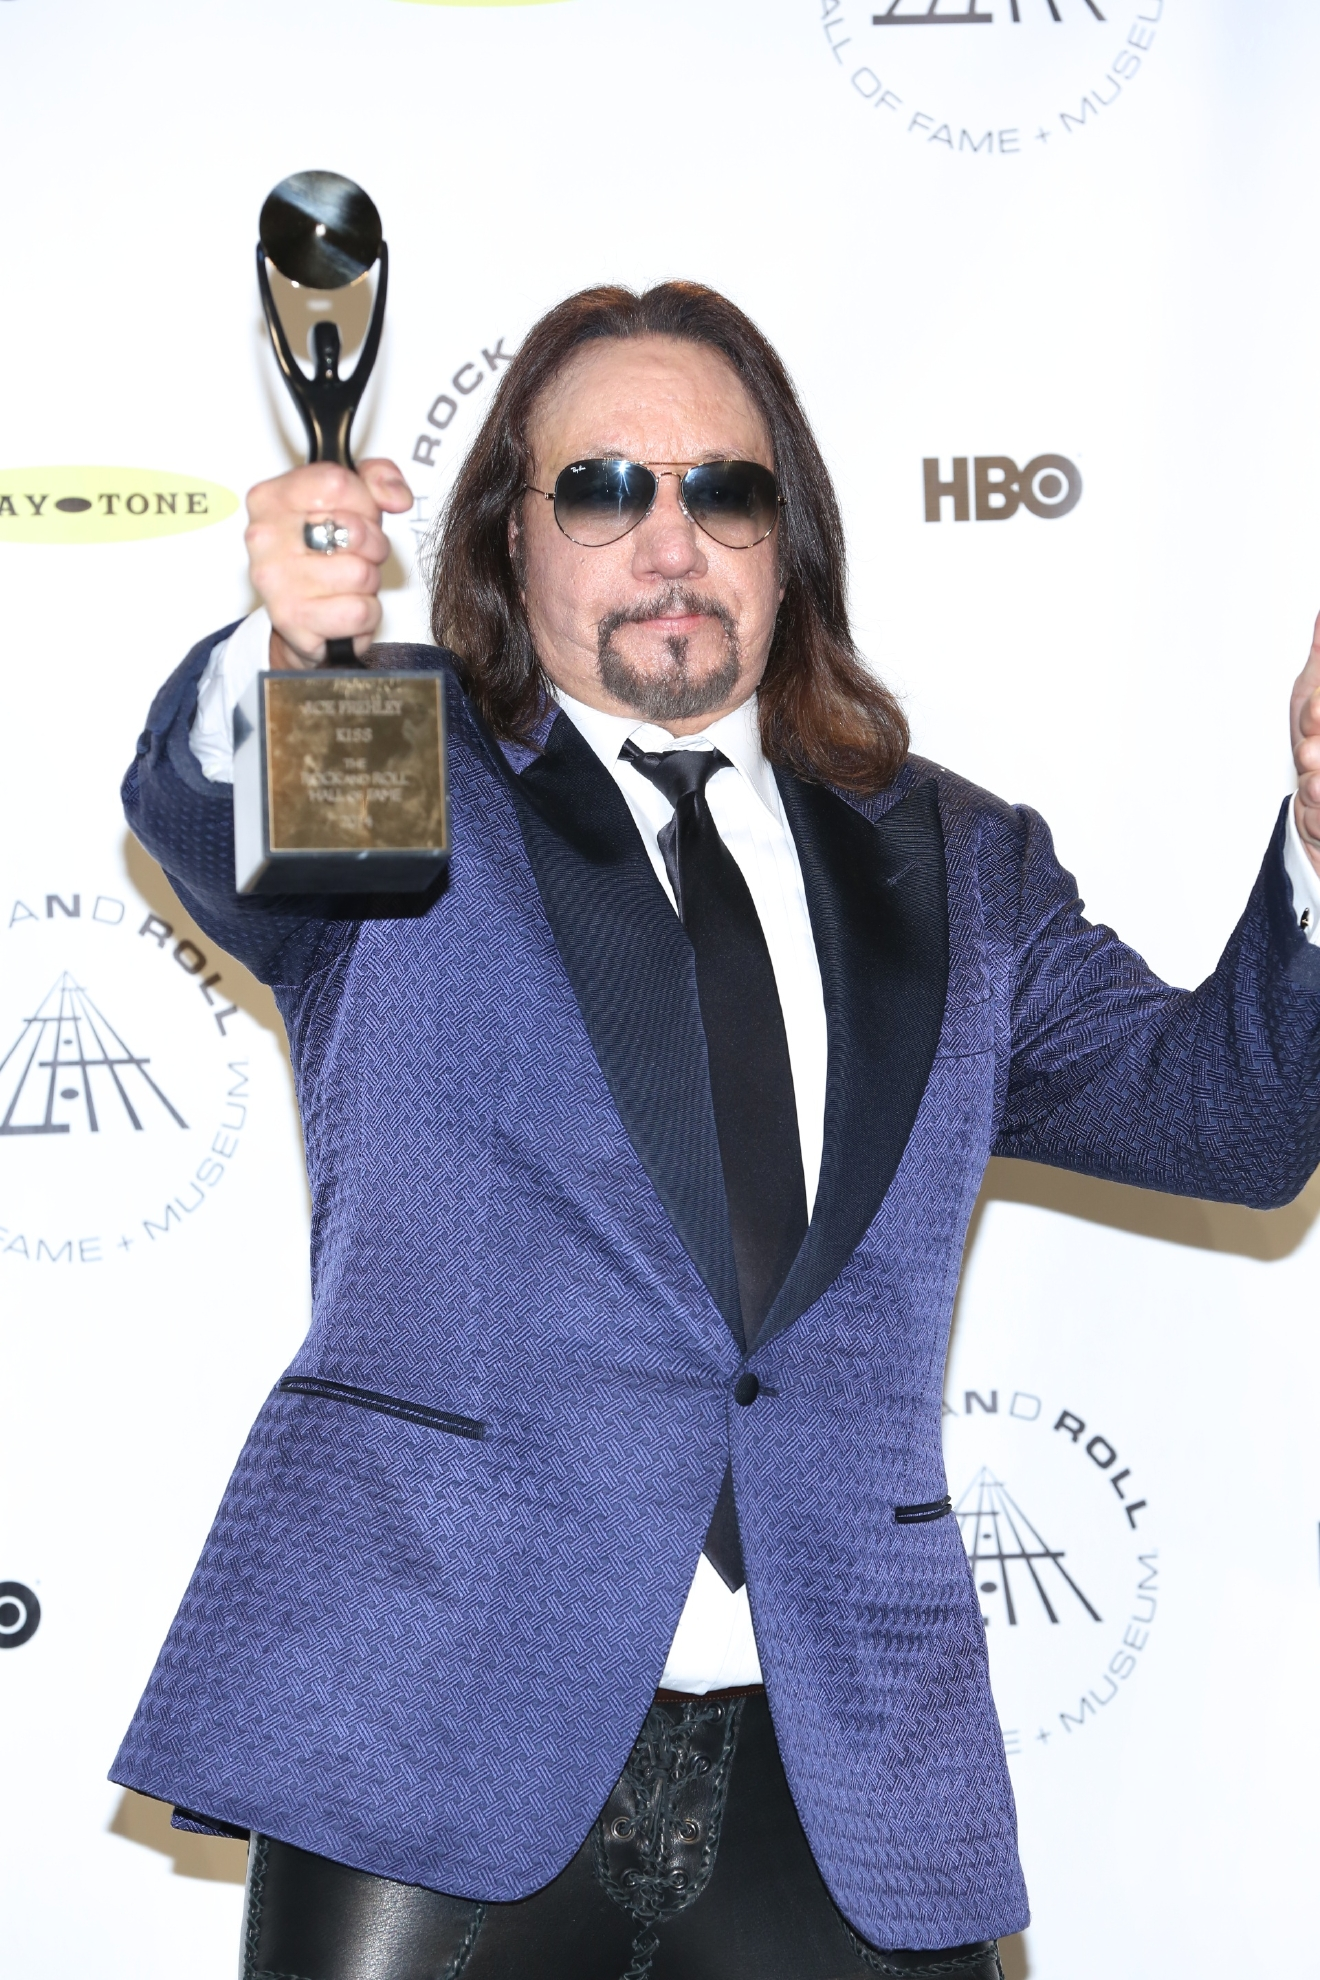 29th Annual Rock And Roll Hall Of Fame Induction Ceremony at Barclays Center of Brooklyn  Featuring: Ace Frehley Where: New York, New York, United States When: 10 Apr 2014 Credit: Andres Otero/WENN.com